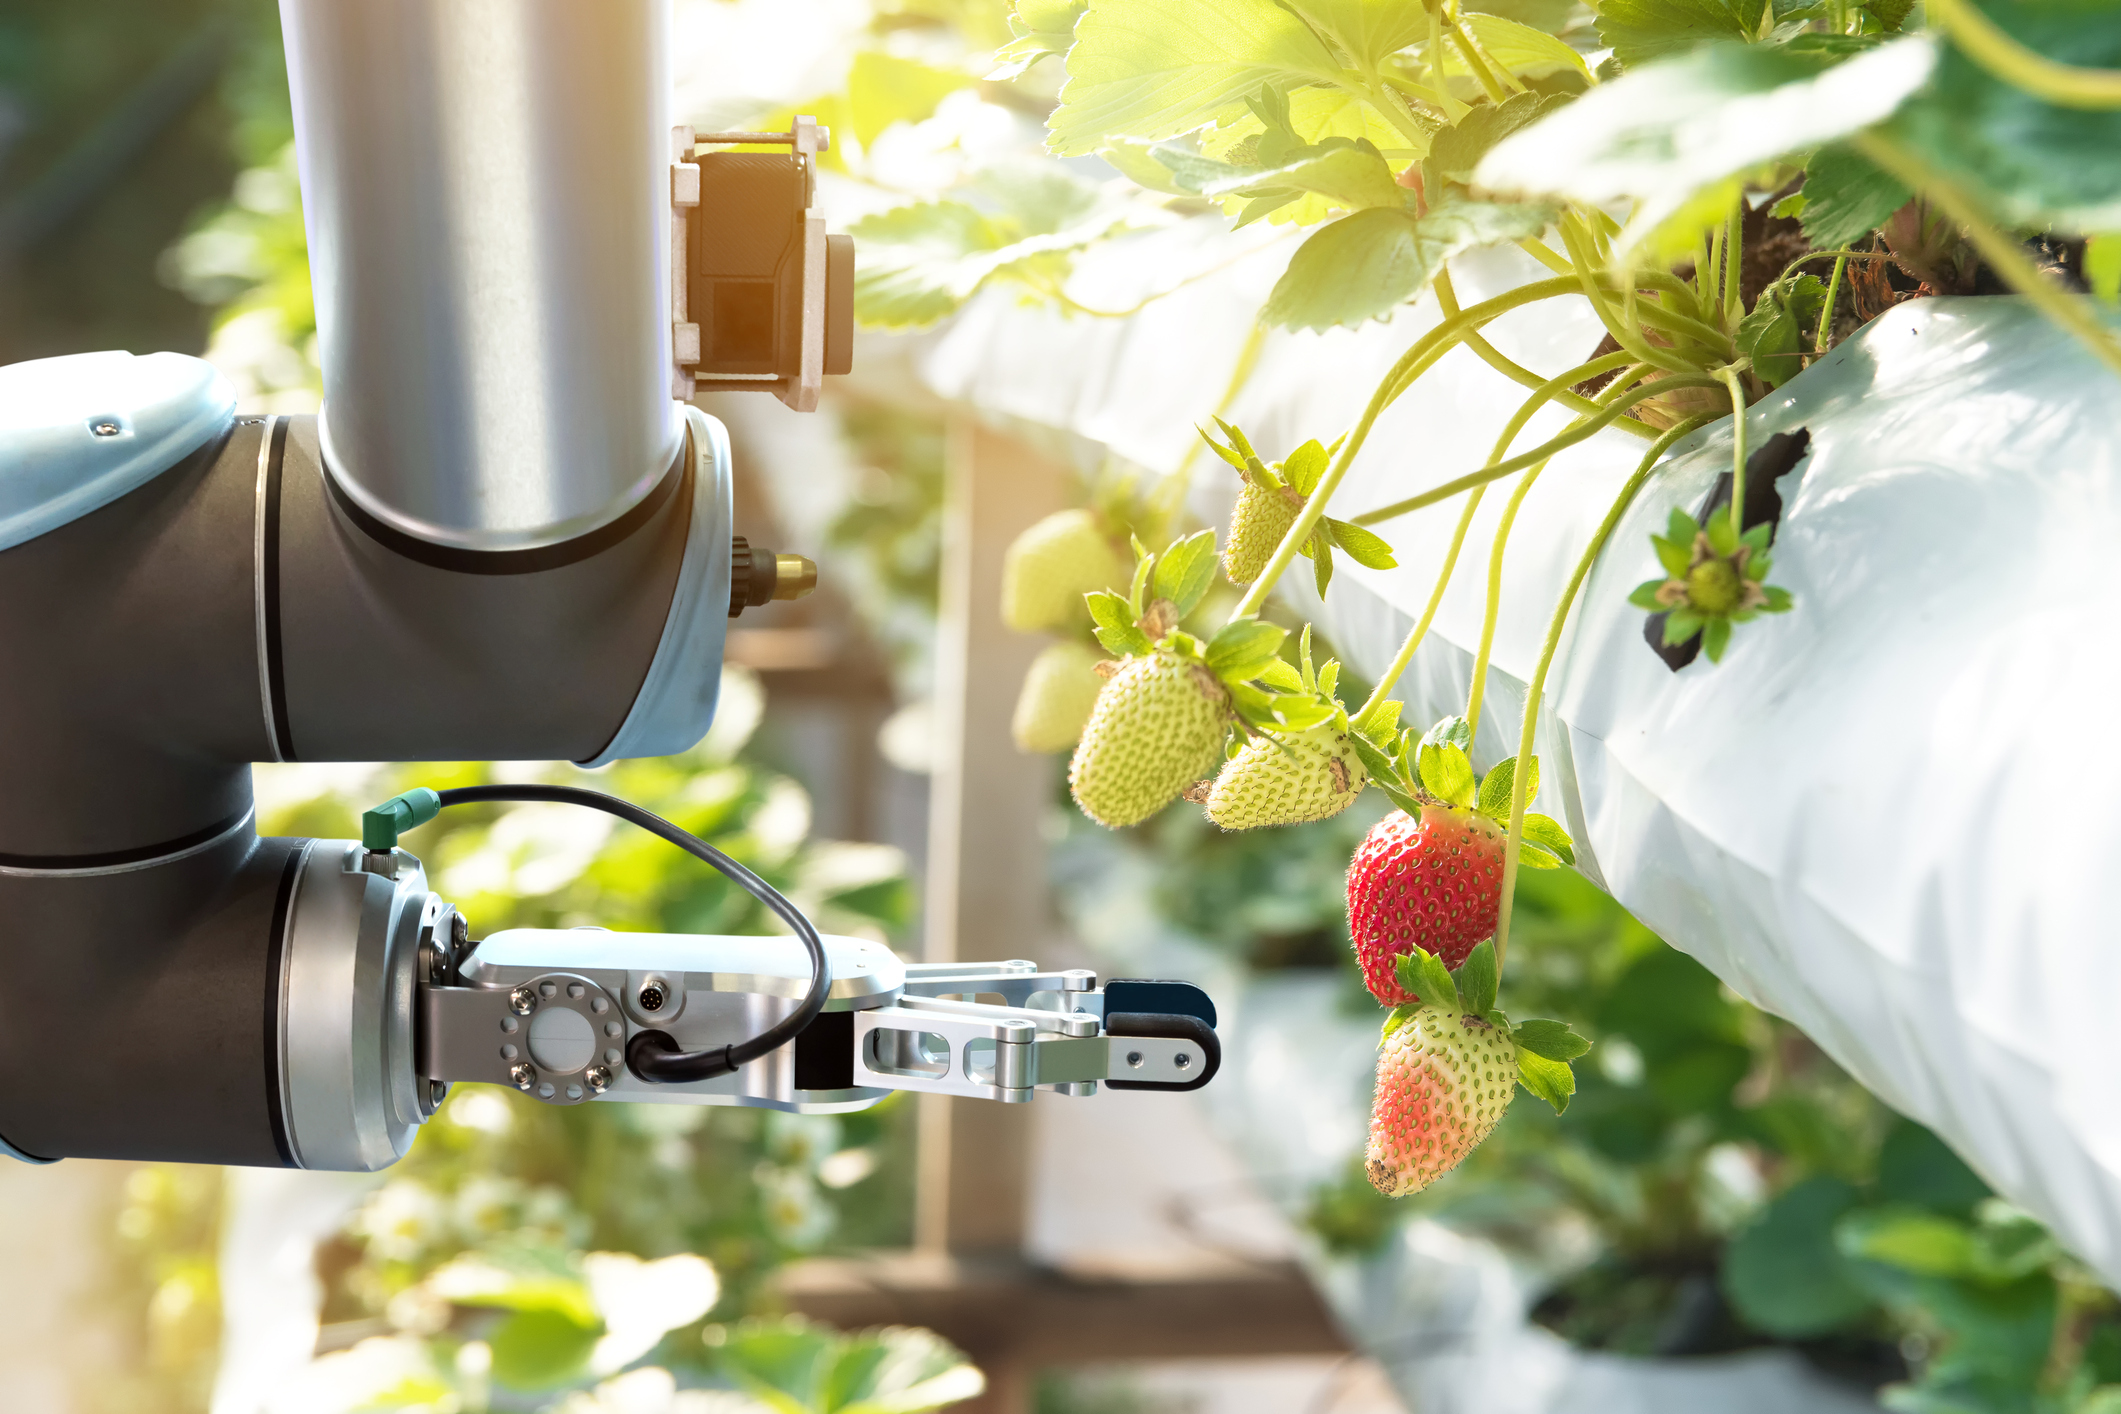 Agribots – How Robots Made Their Way Onto Farms